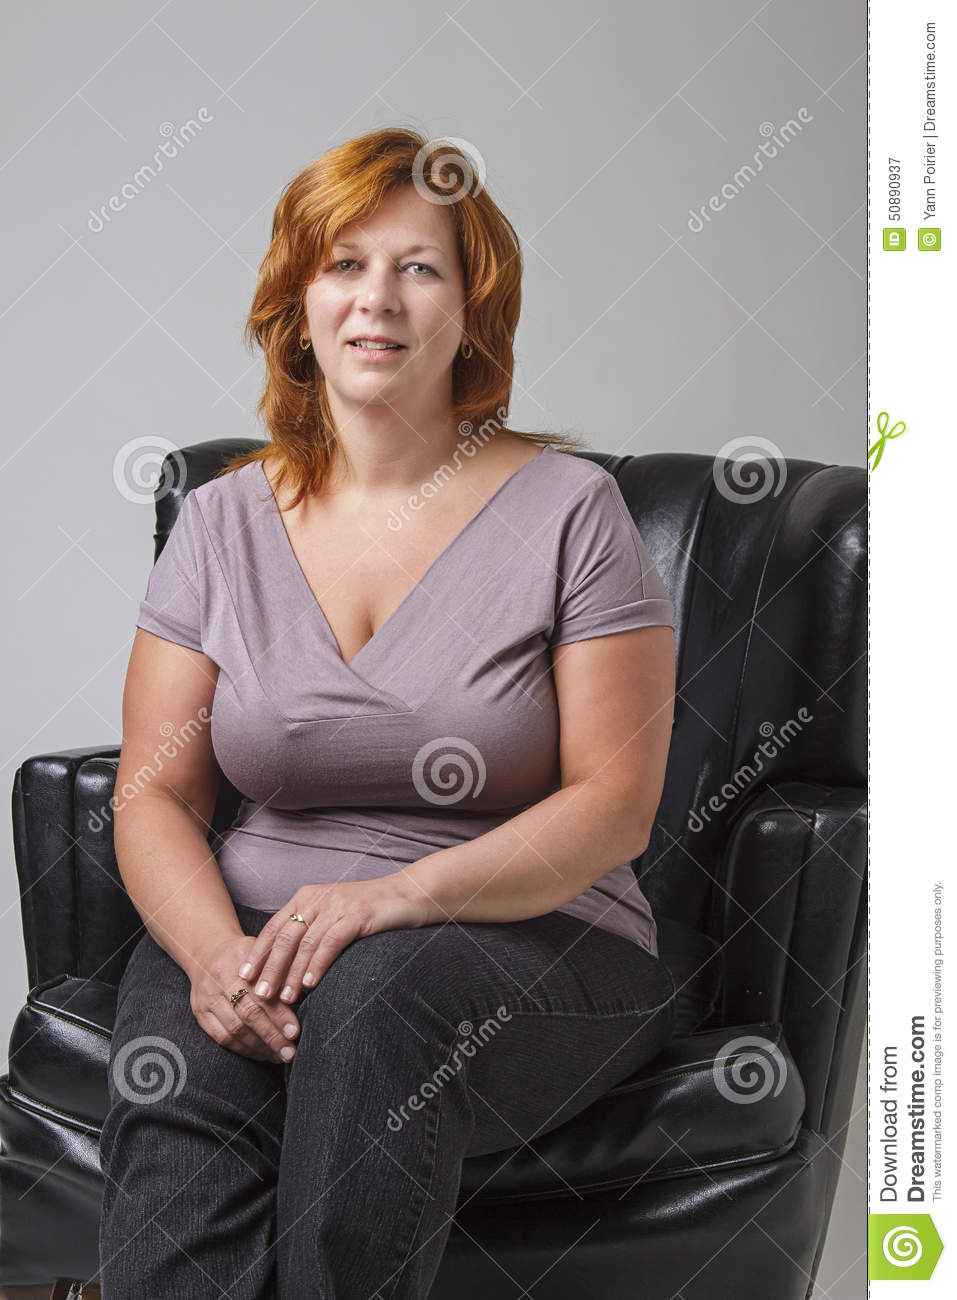 Woman In Her Forties Stock Photo Image 50890937